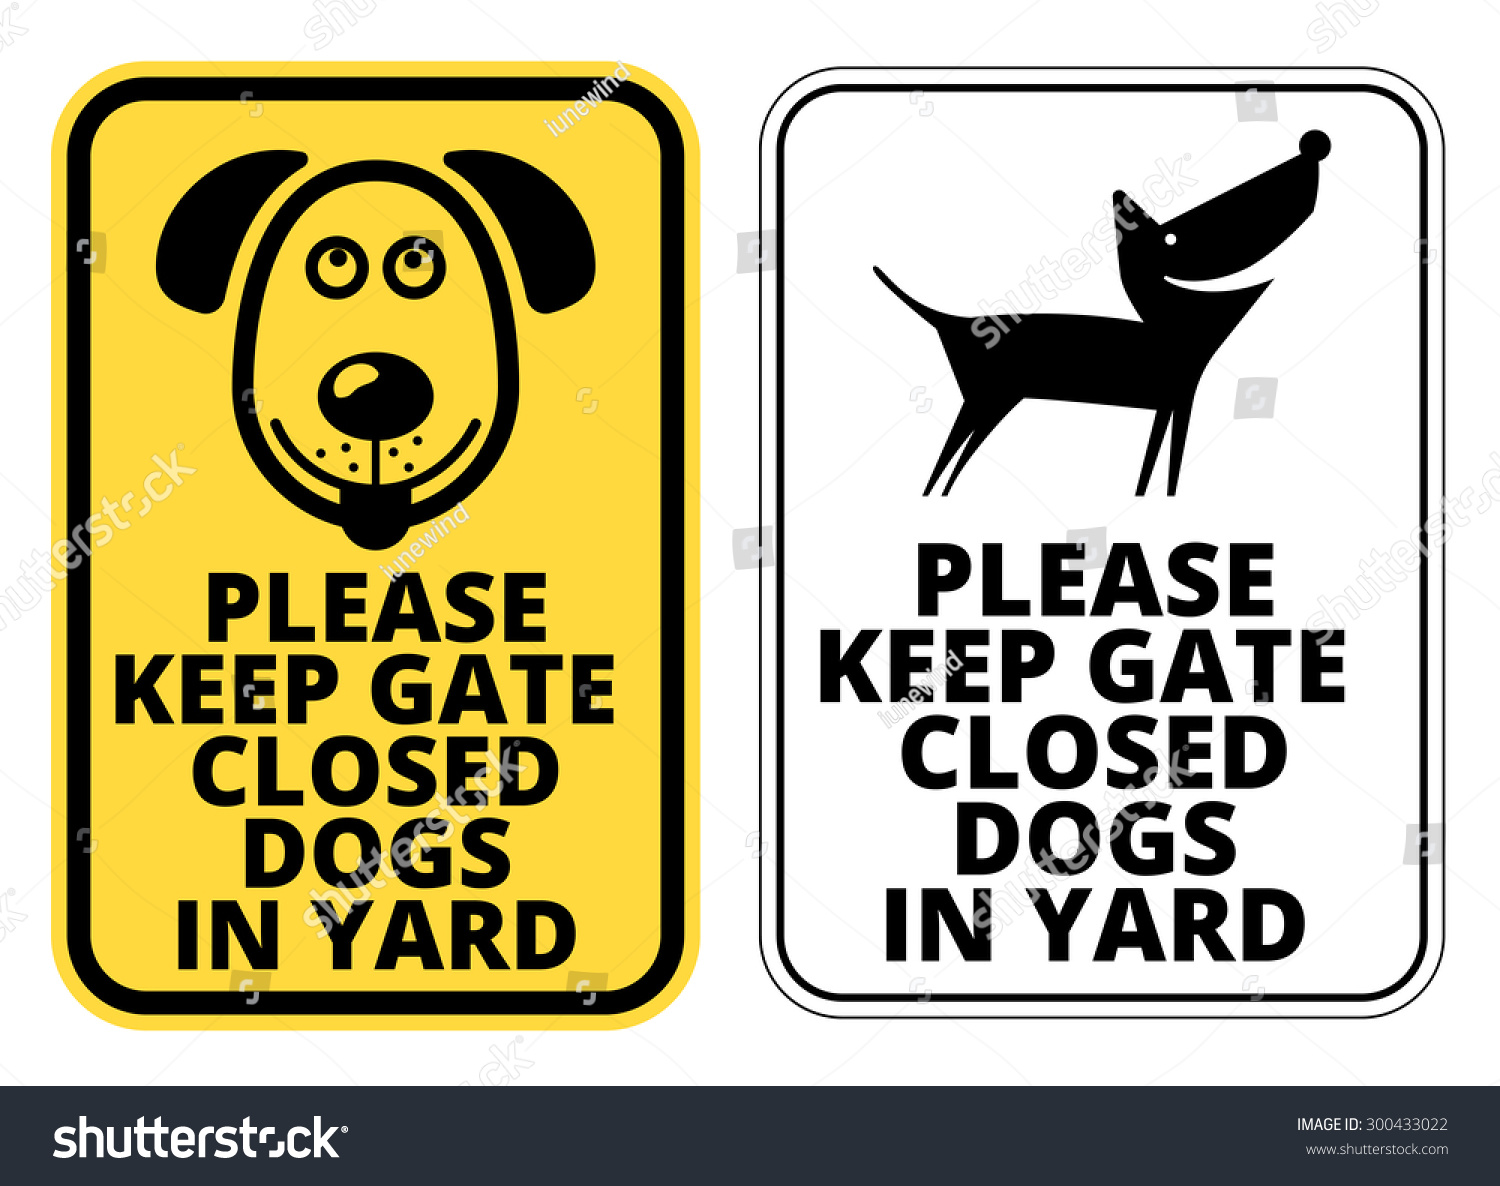 keep gate closed dog yard signs stock vector 300433022 - shutterstock